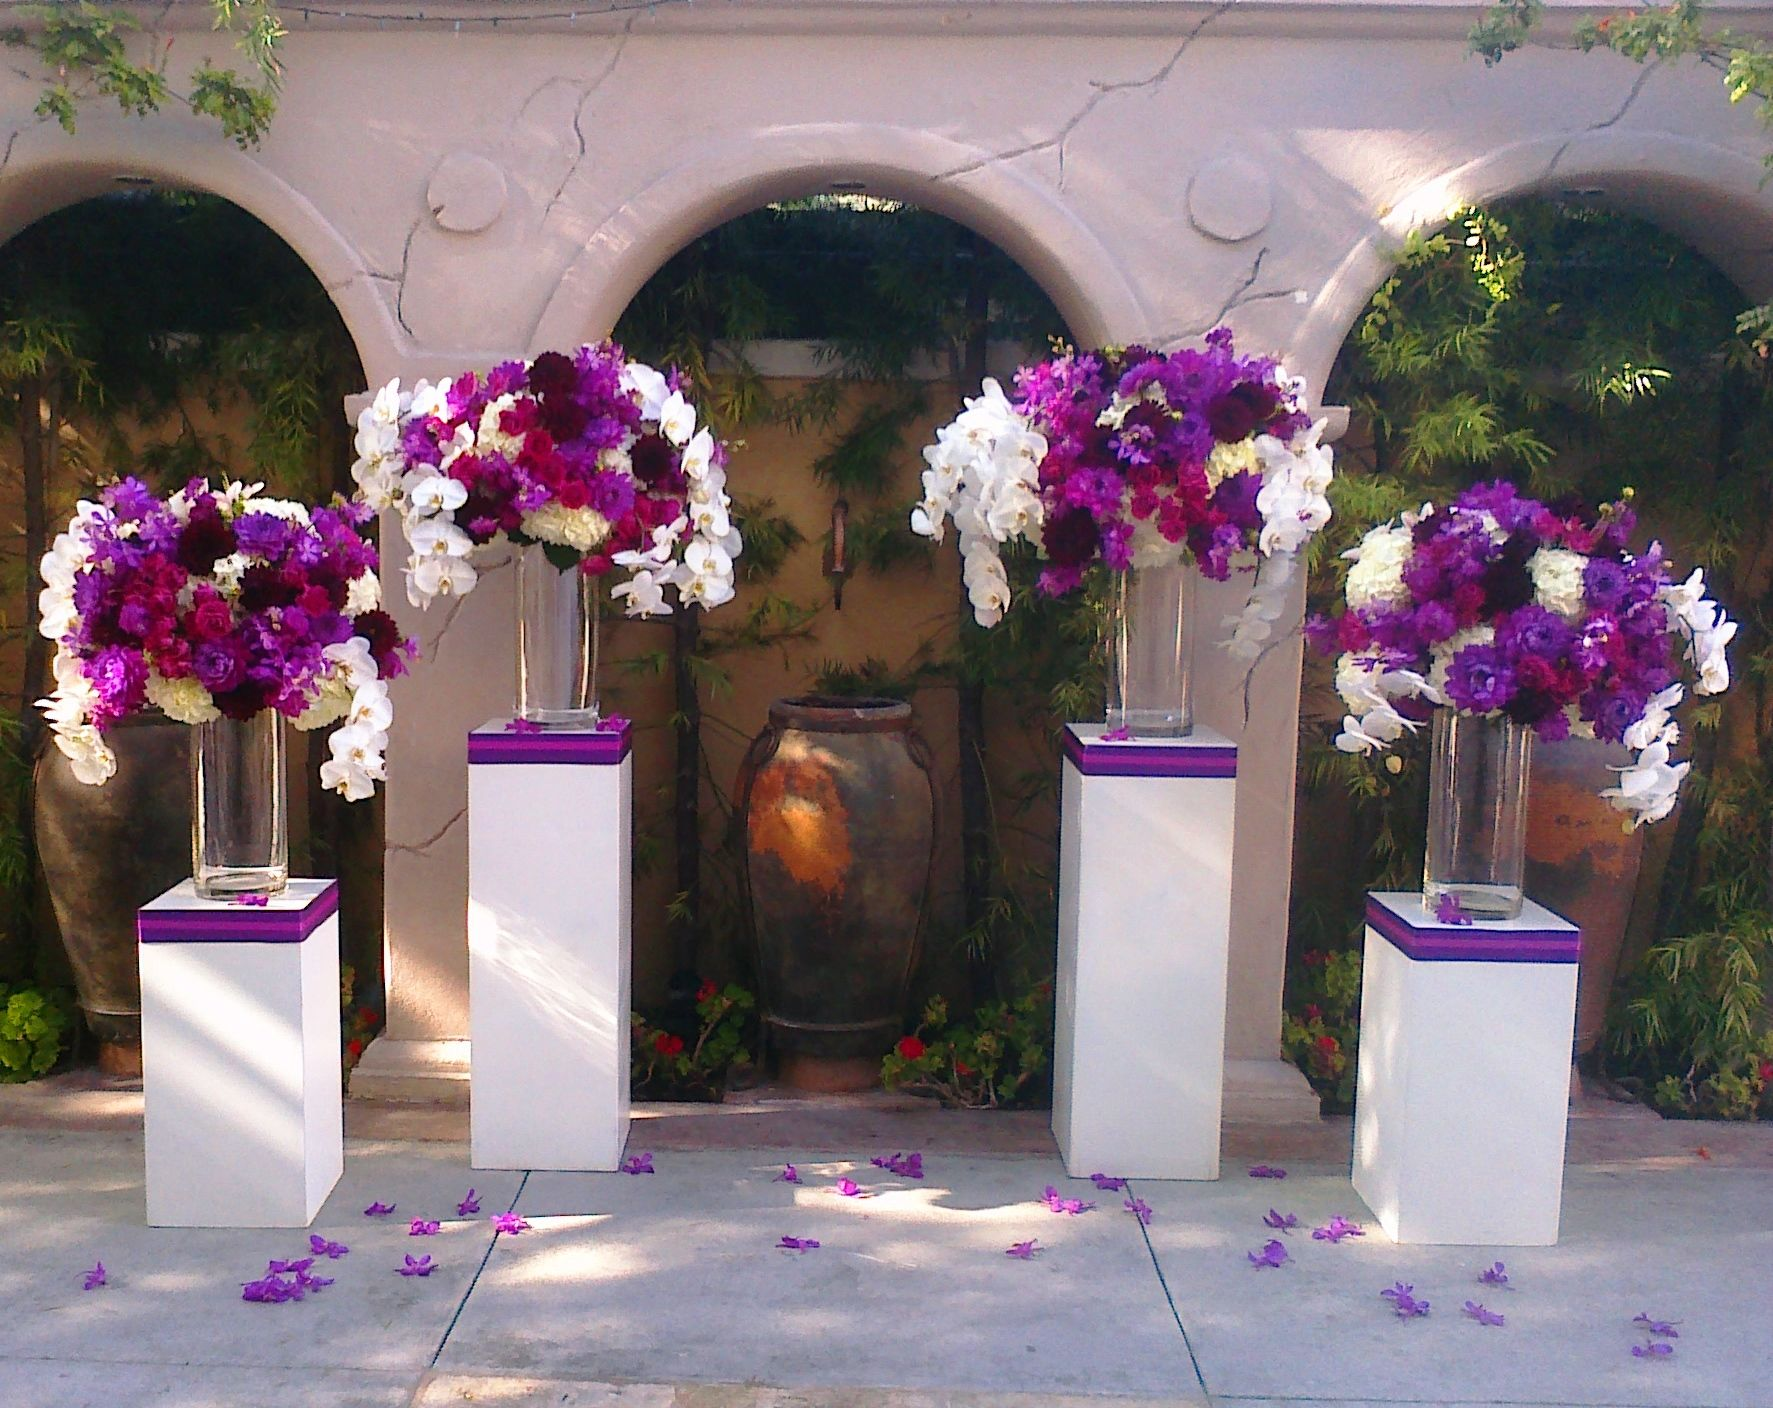 Wedding decorations at home  gorgeous purple flowers at the altar ceremony flowers wedding decor